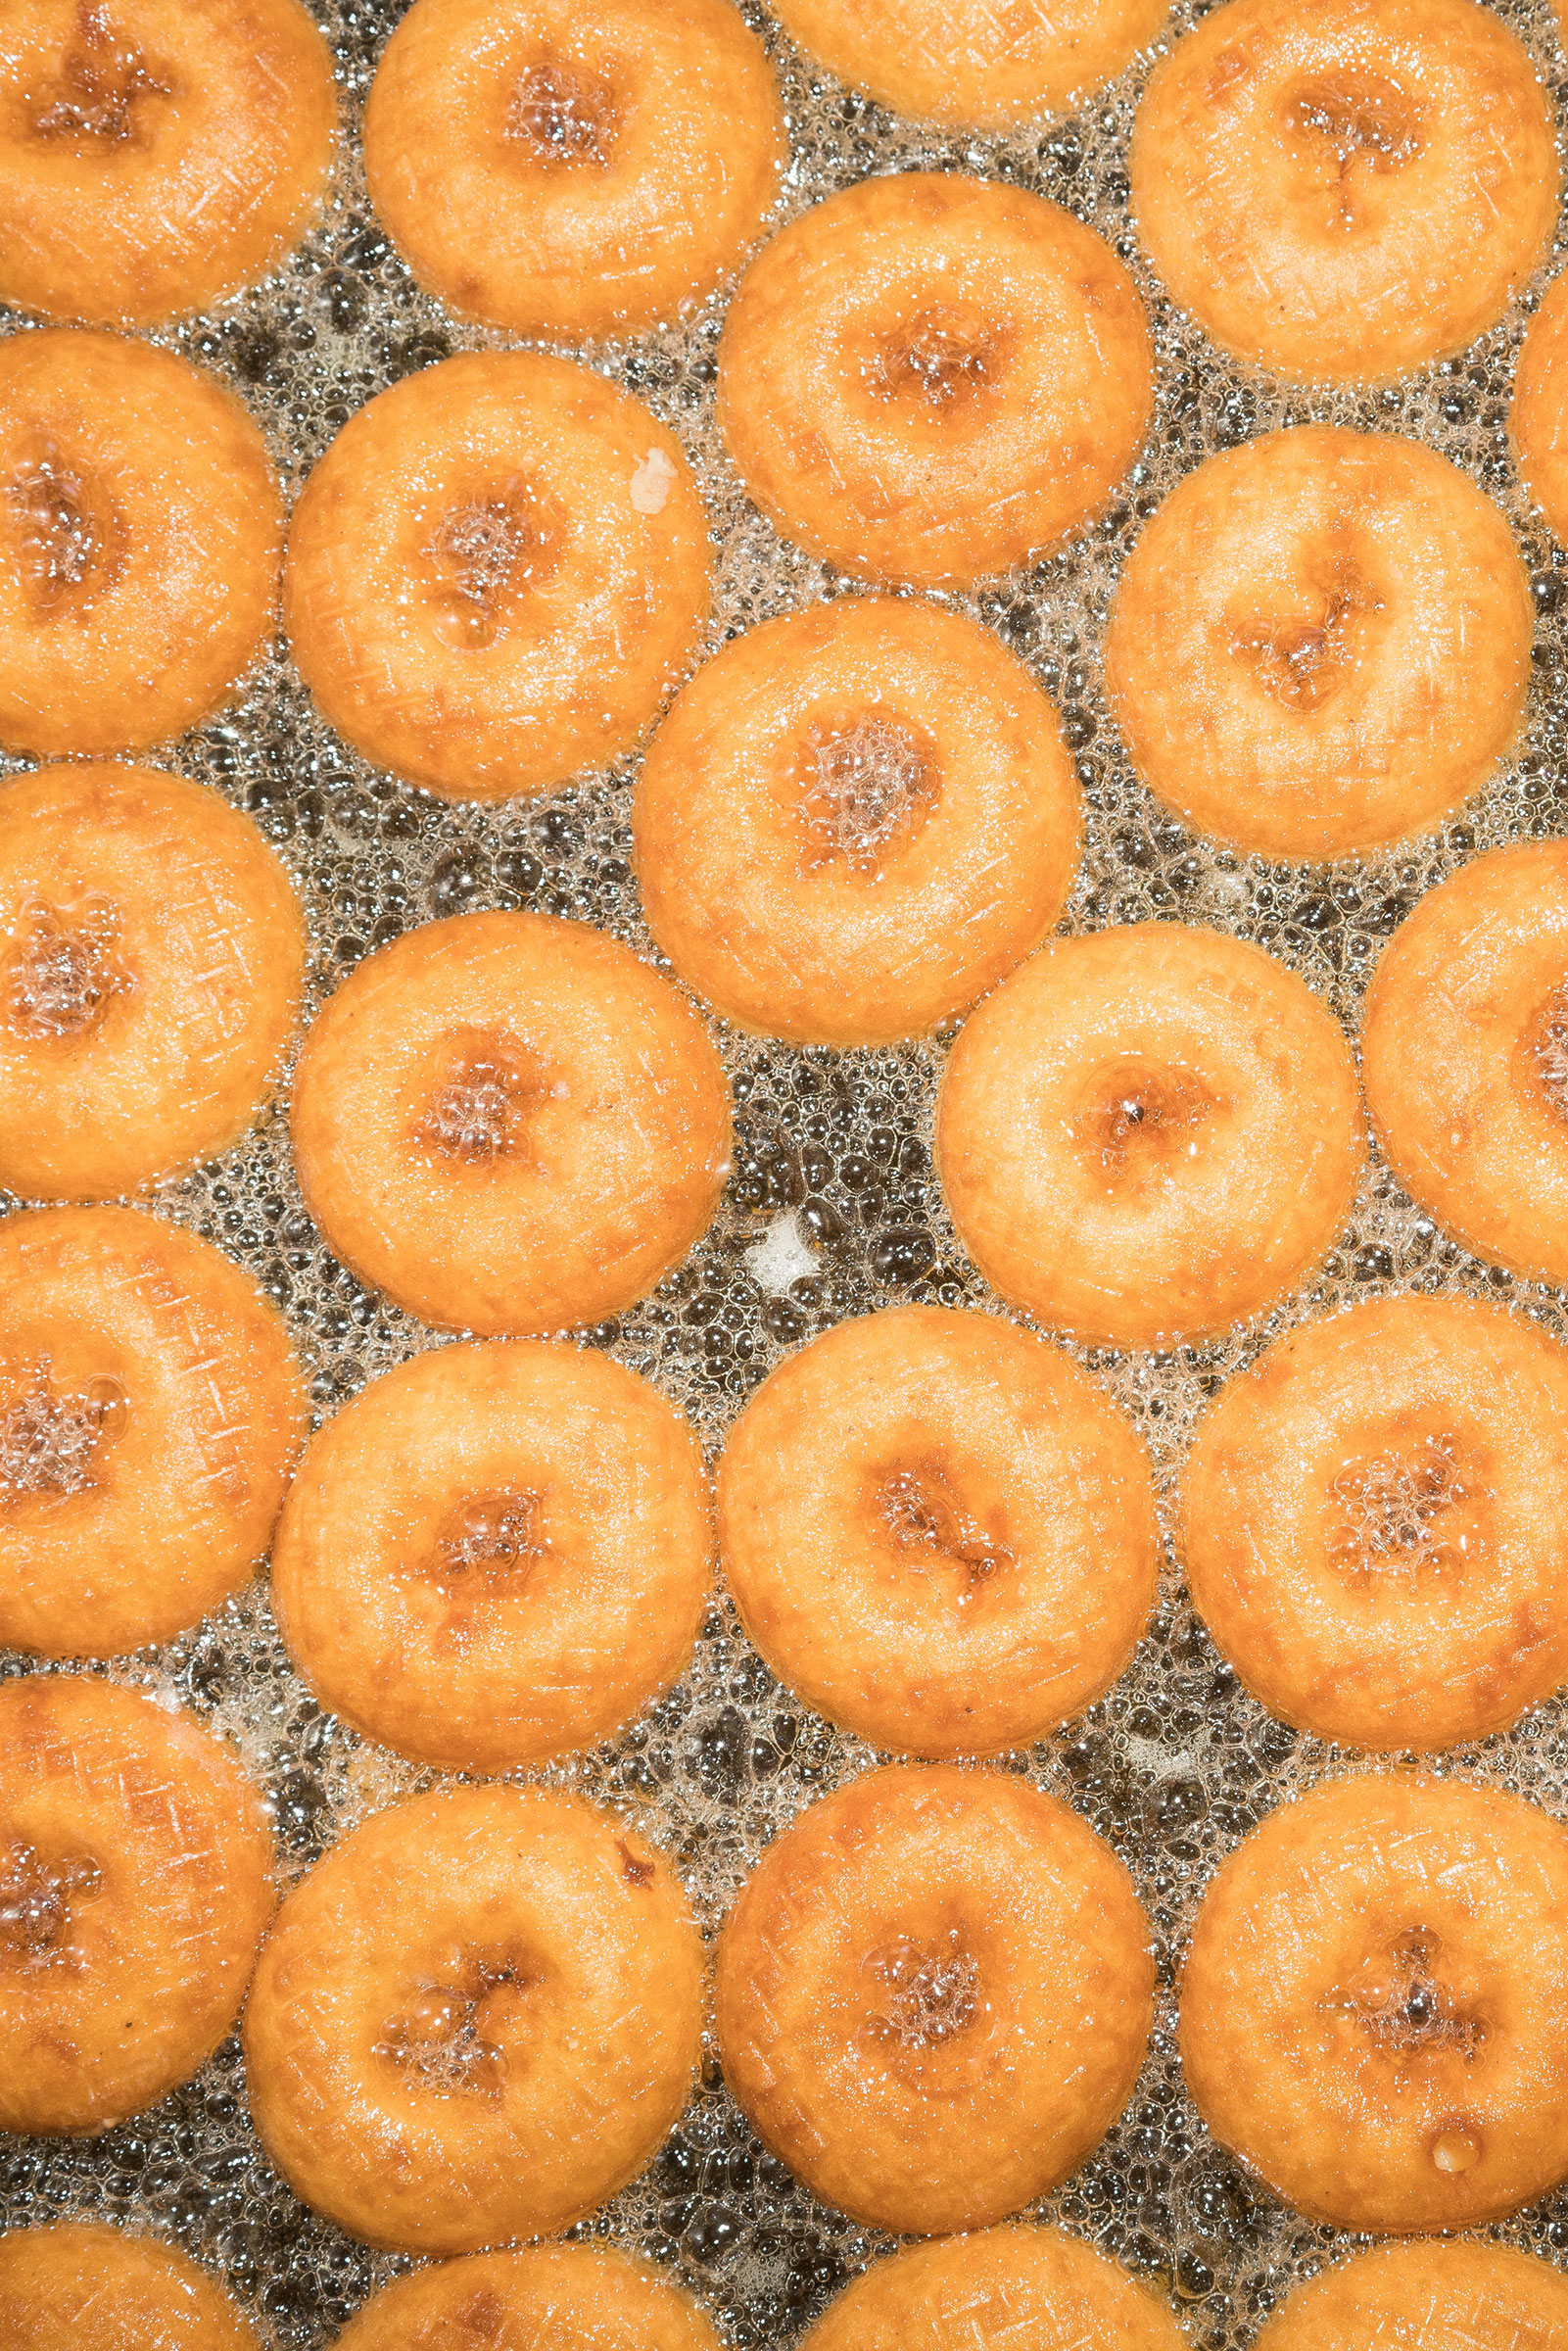 Donuts frying at The Donut Man in Glendora, CA